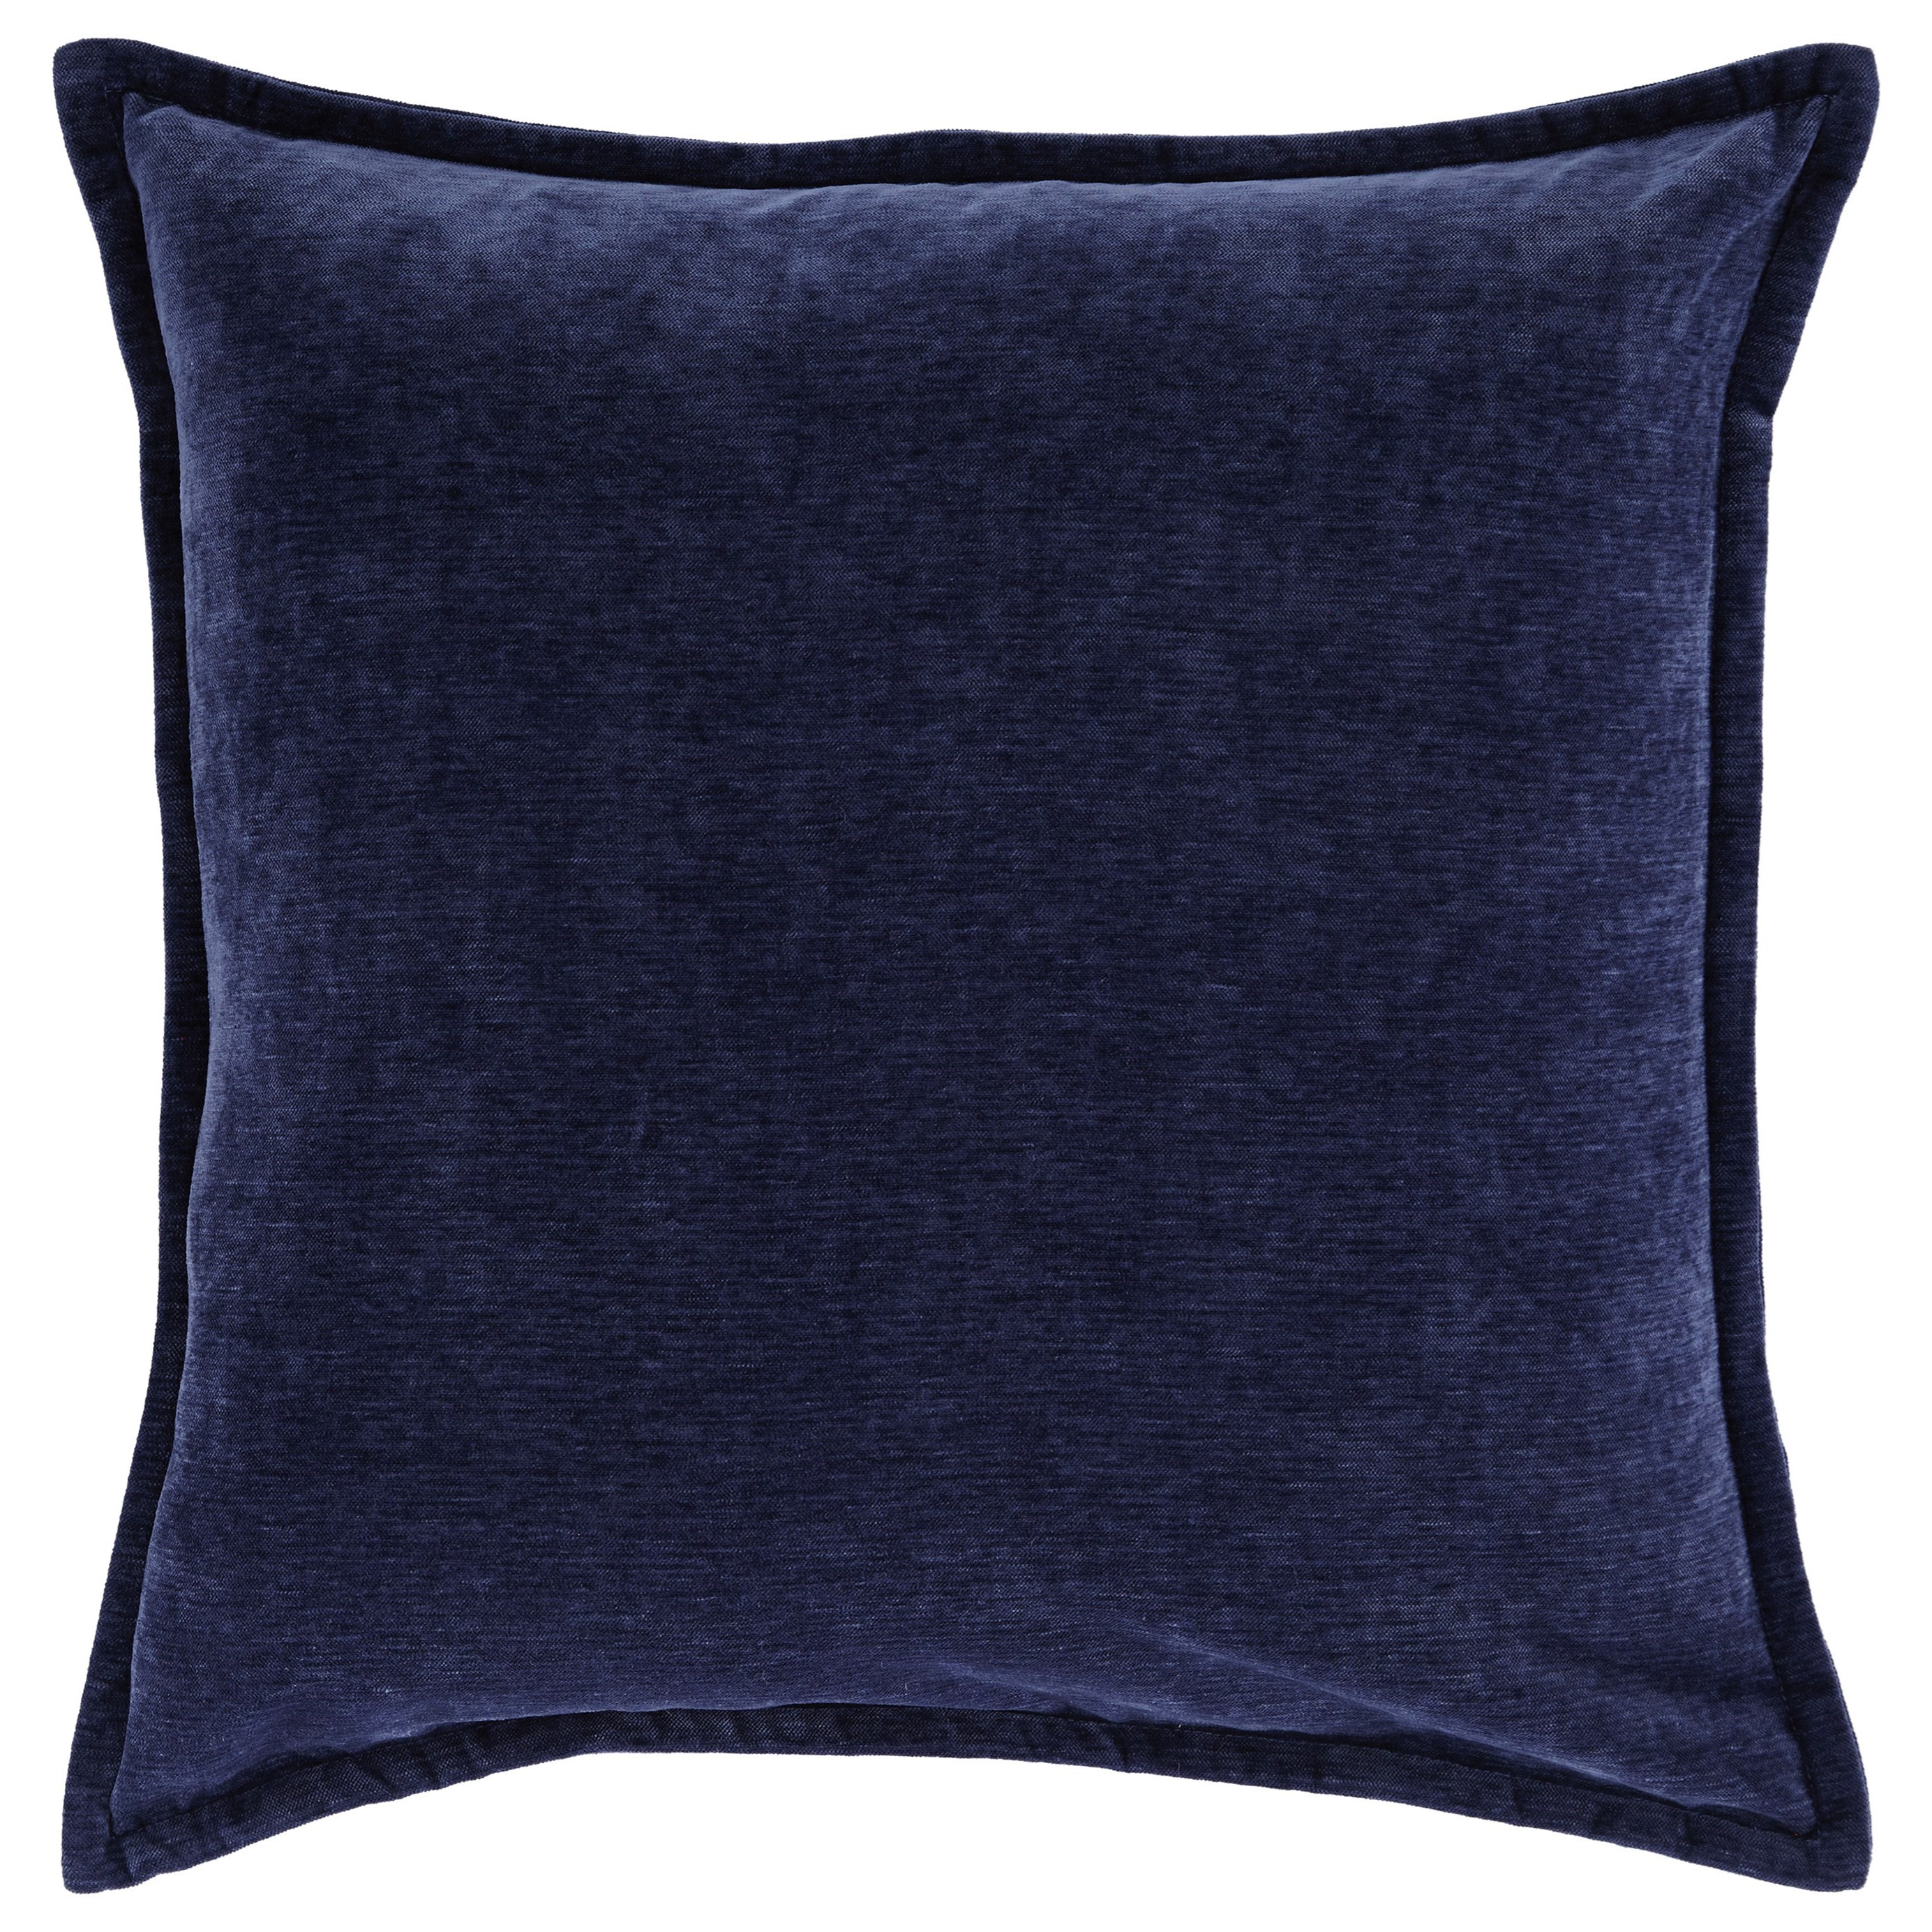 Signature Design by Ashley Pillows Irene Indigo Pillow - Item Number: A1000733P